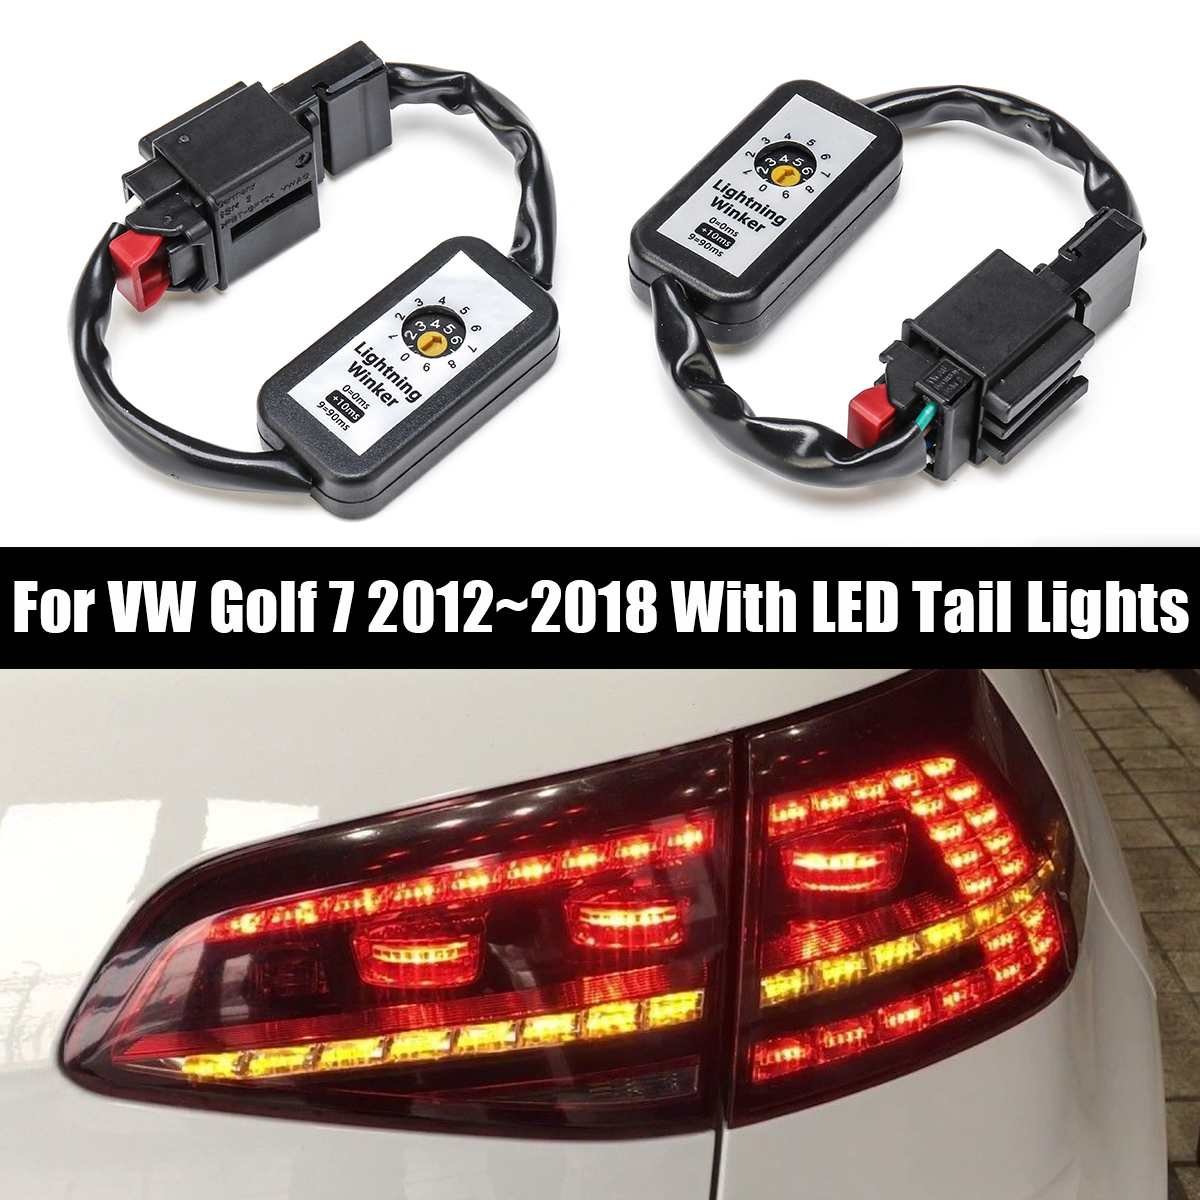 2X Black Dynamic Turn Signal Indicator LED Taillight  Add-on Module Cable Wire Harness For VW Golf 7 Left & Right Tail Light2X Black Dynamic Turn Signal Indicator LED Taillight  Add-on Module Cable Wire Harness For VW Golf 7 Left & Right Tail Light